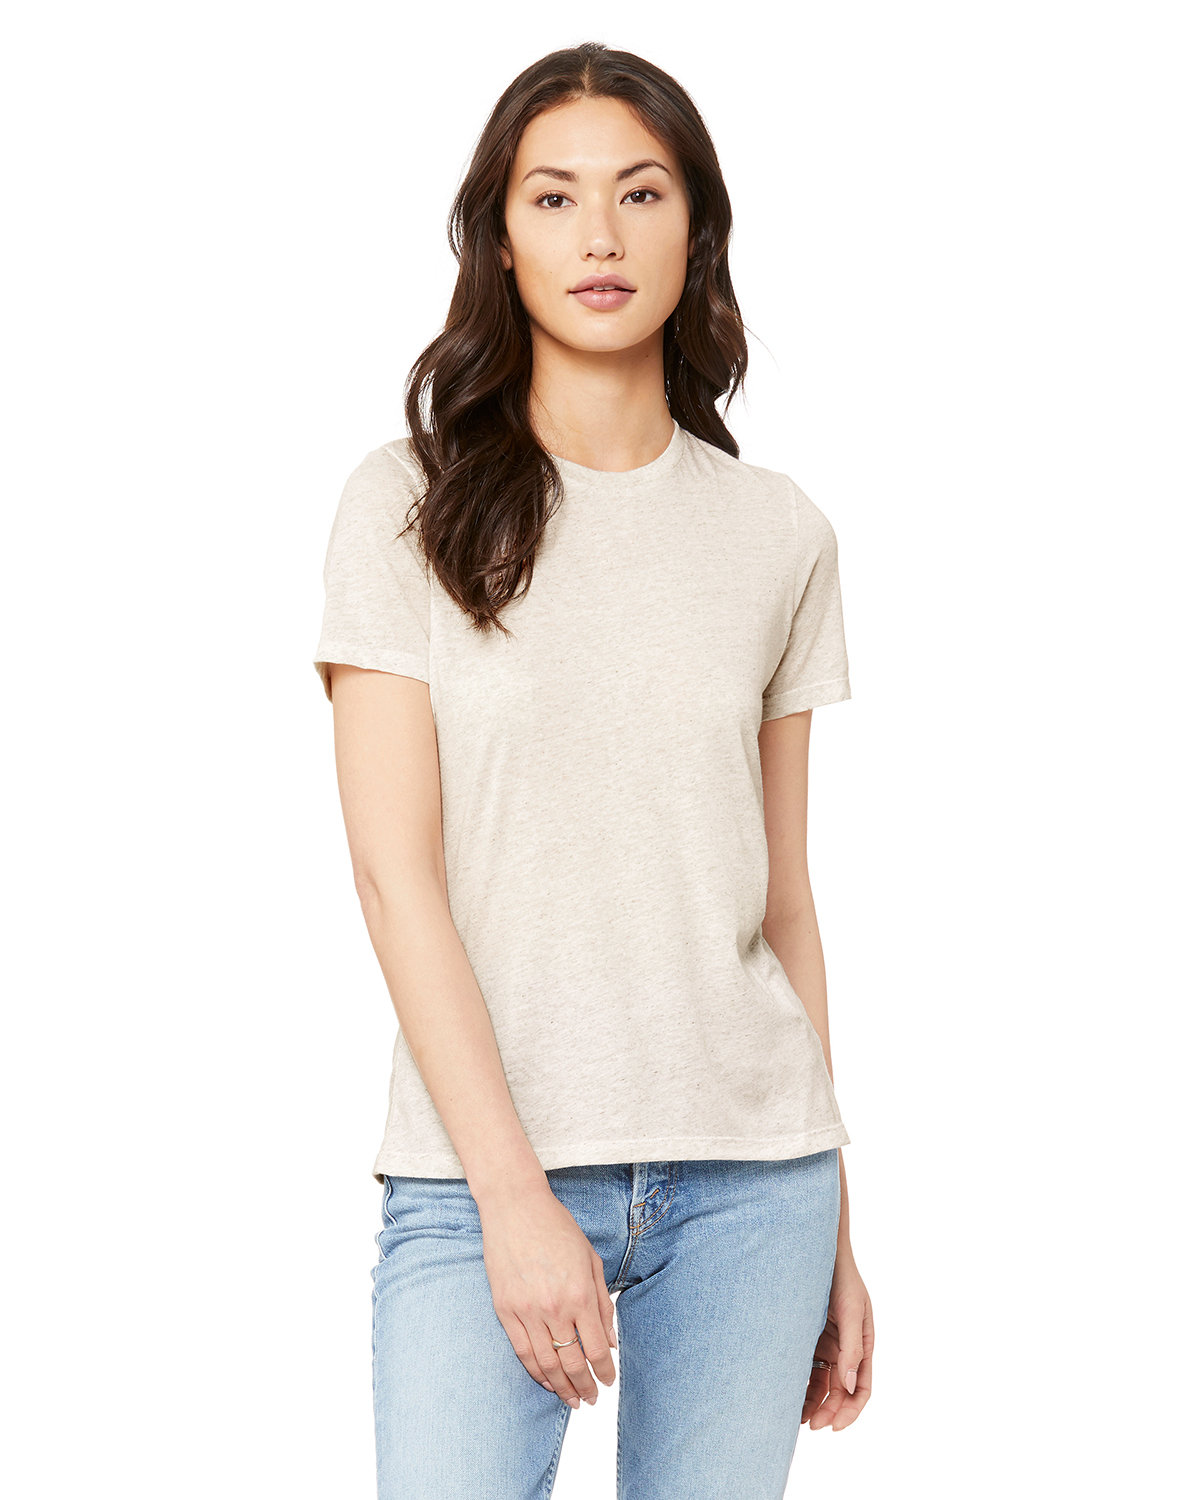 Bella + Canvas Ladies' Relaxed Triblend T-Shirt OATMEAL TRIBLEND